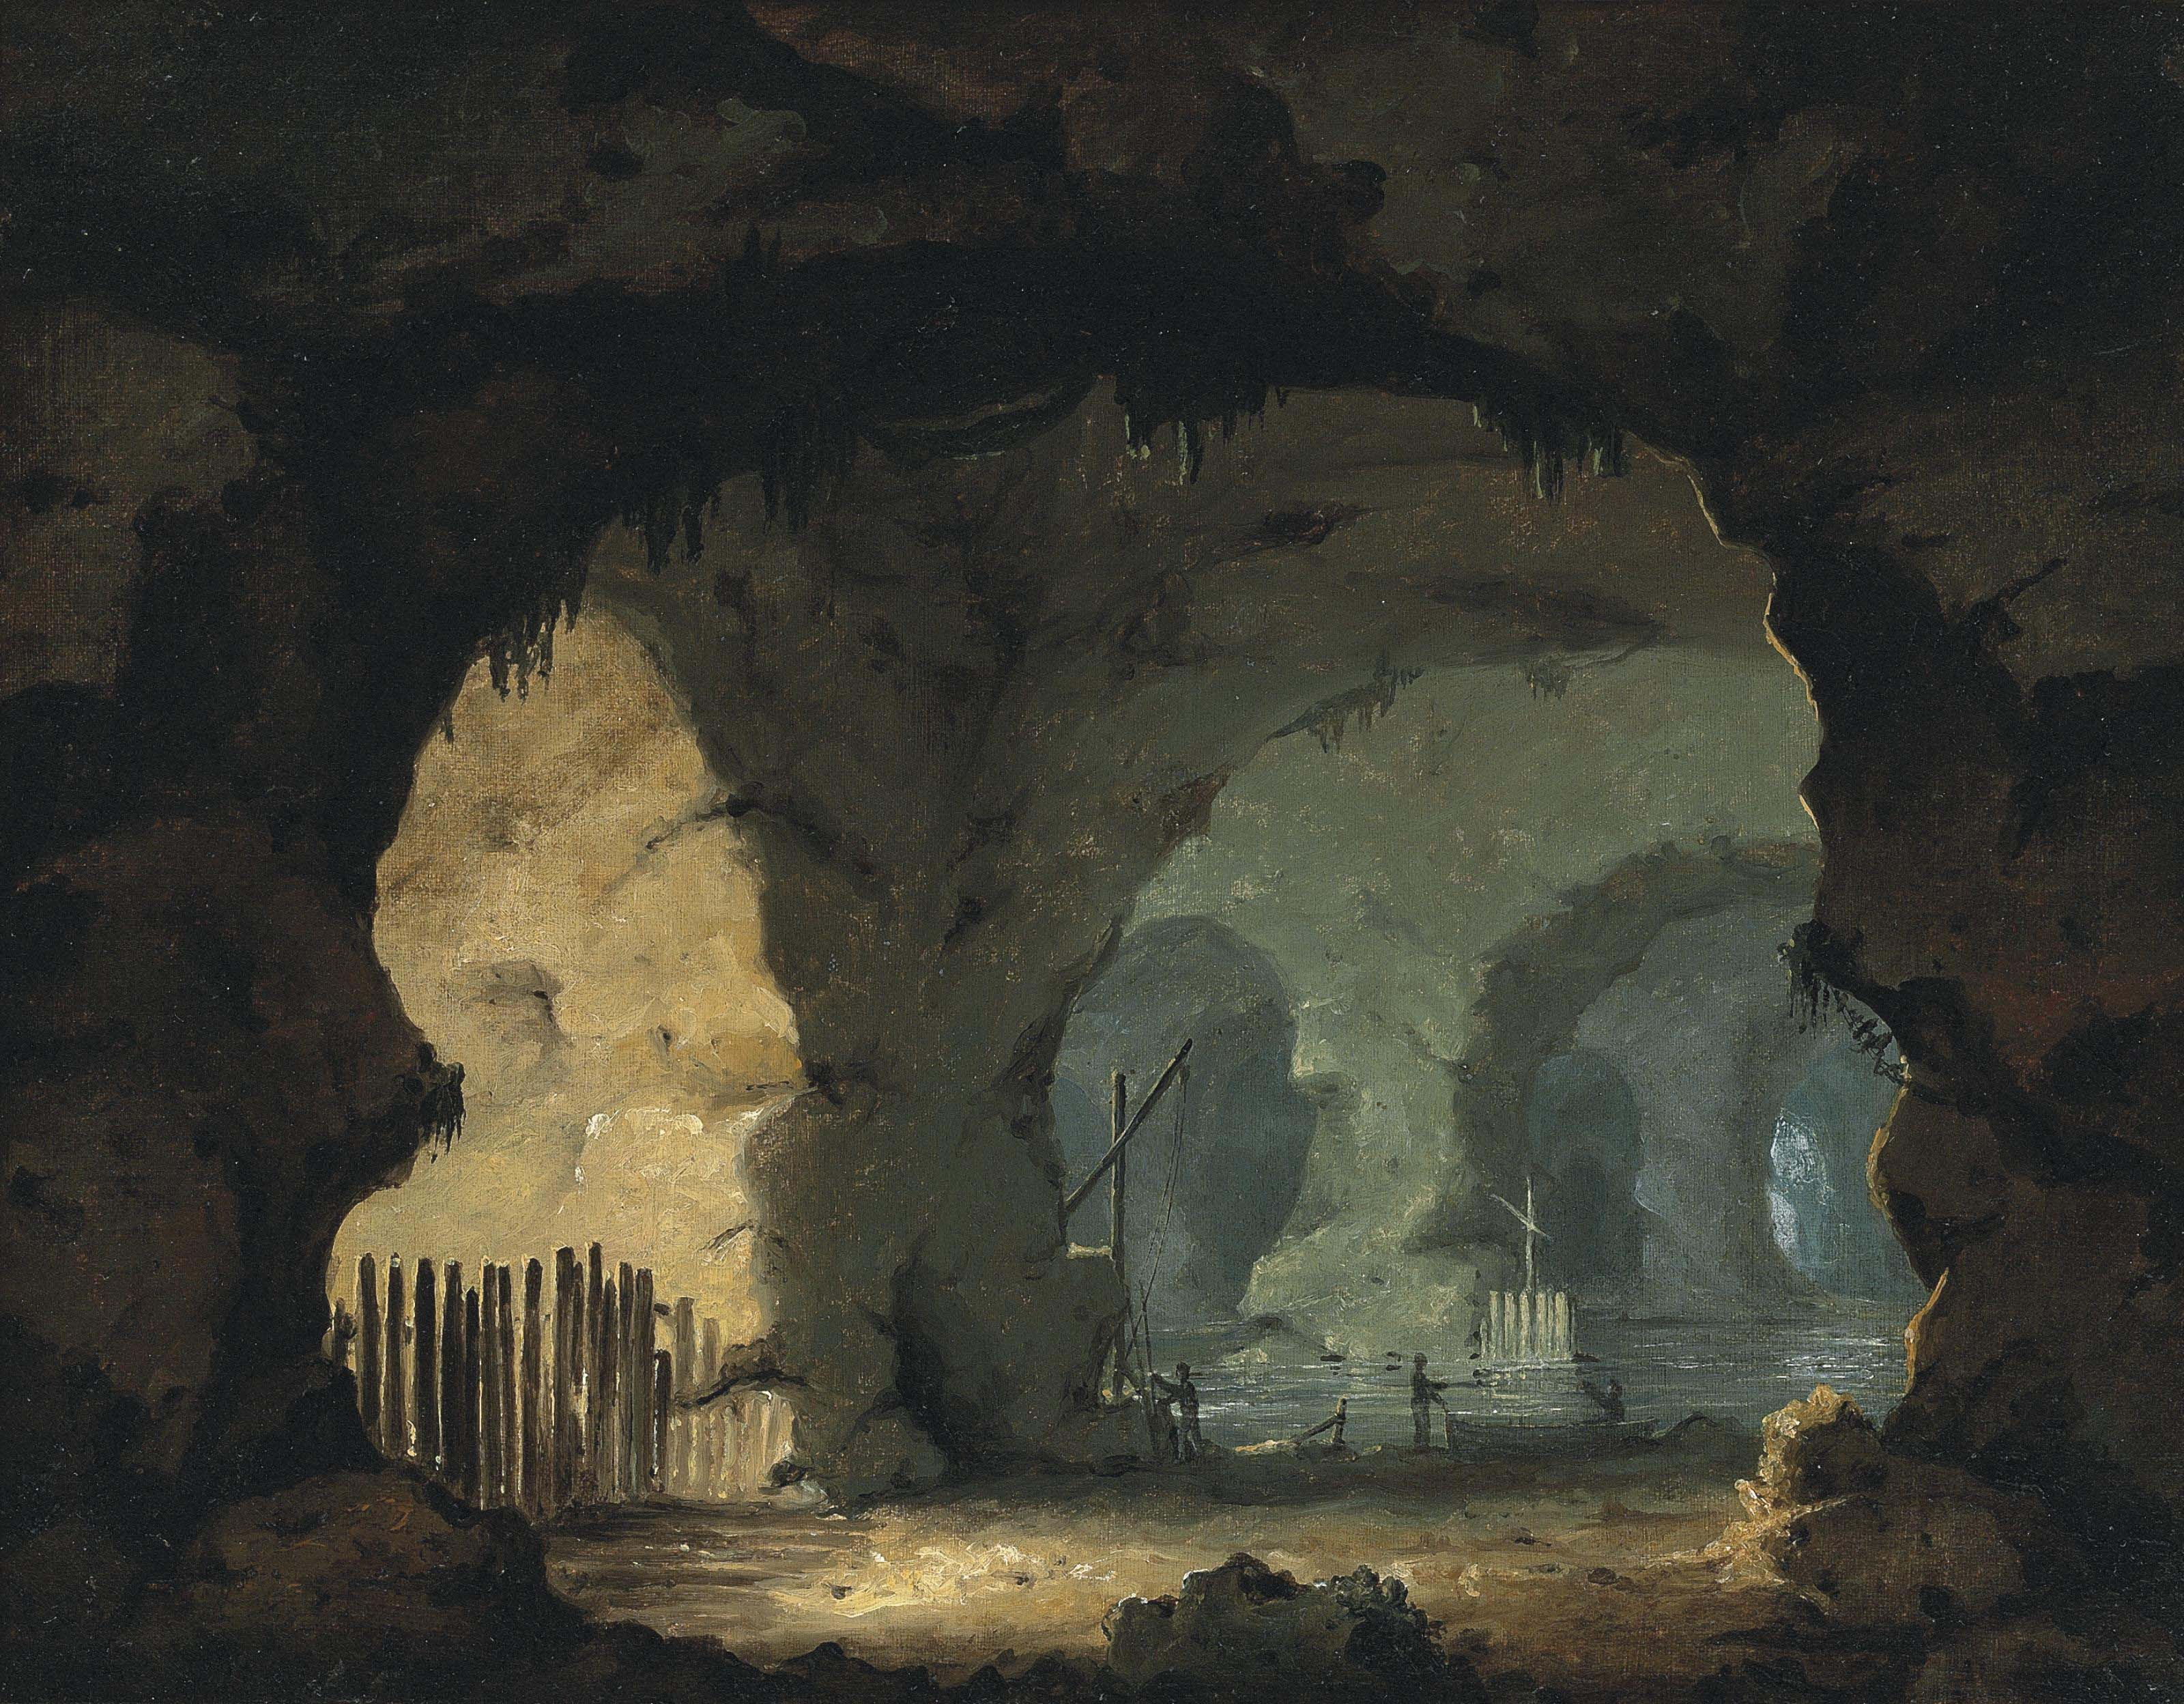 A sea cave interior with figures and boats